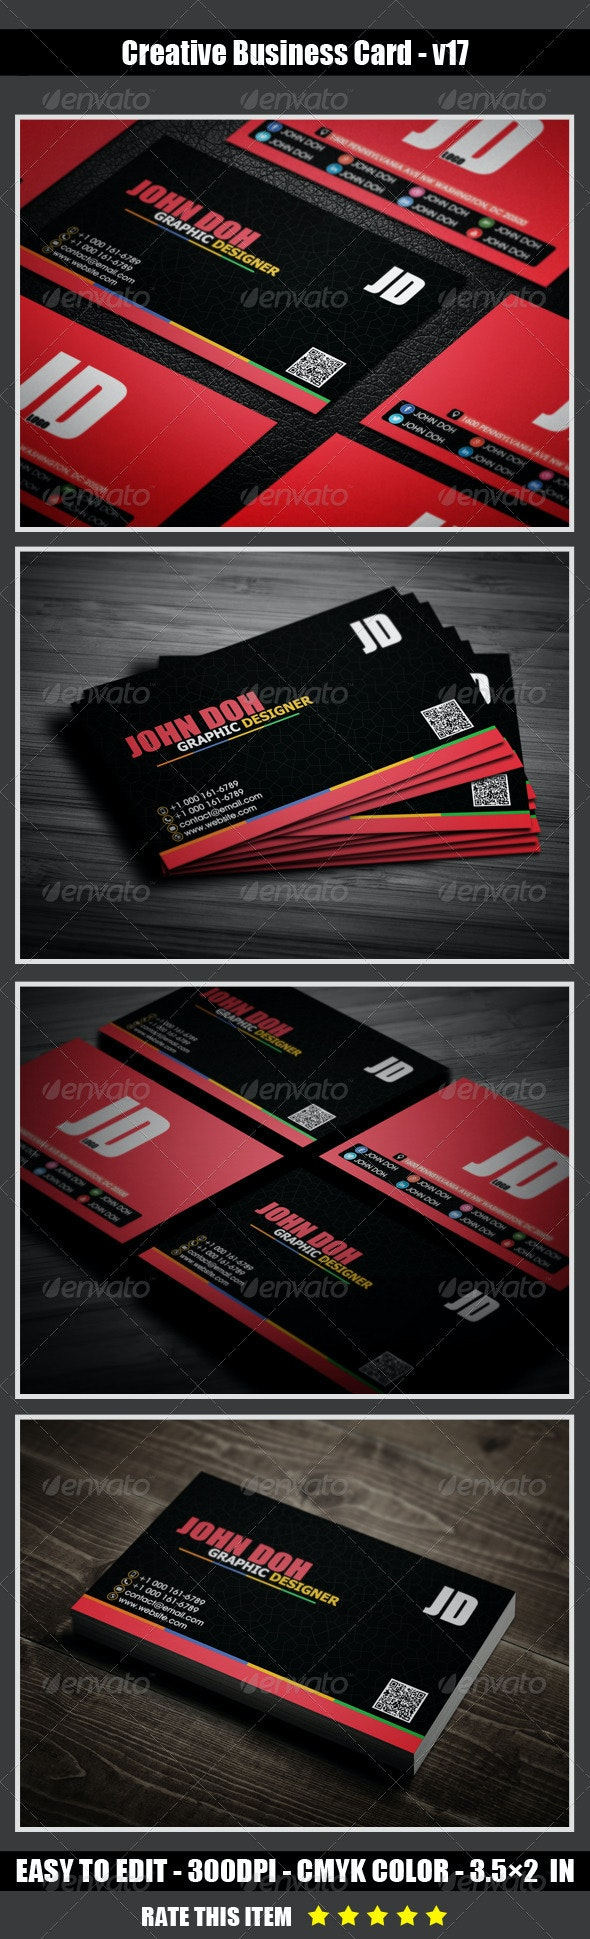 Creative Business Card v17 - Creative Business Cards